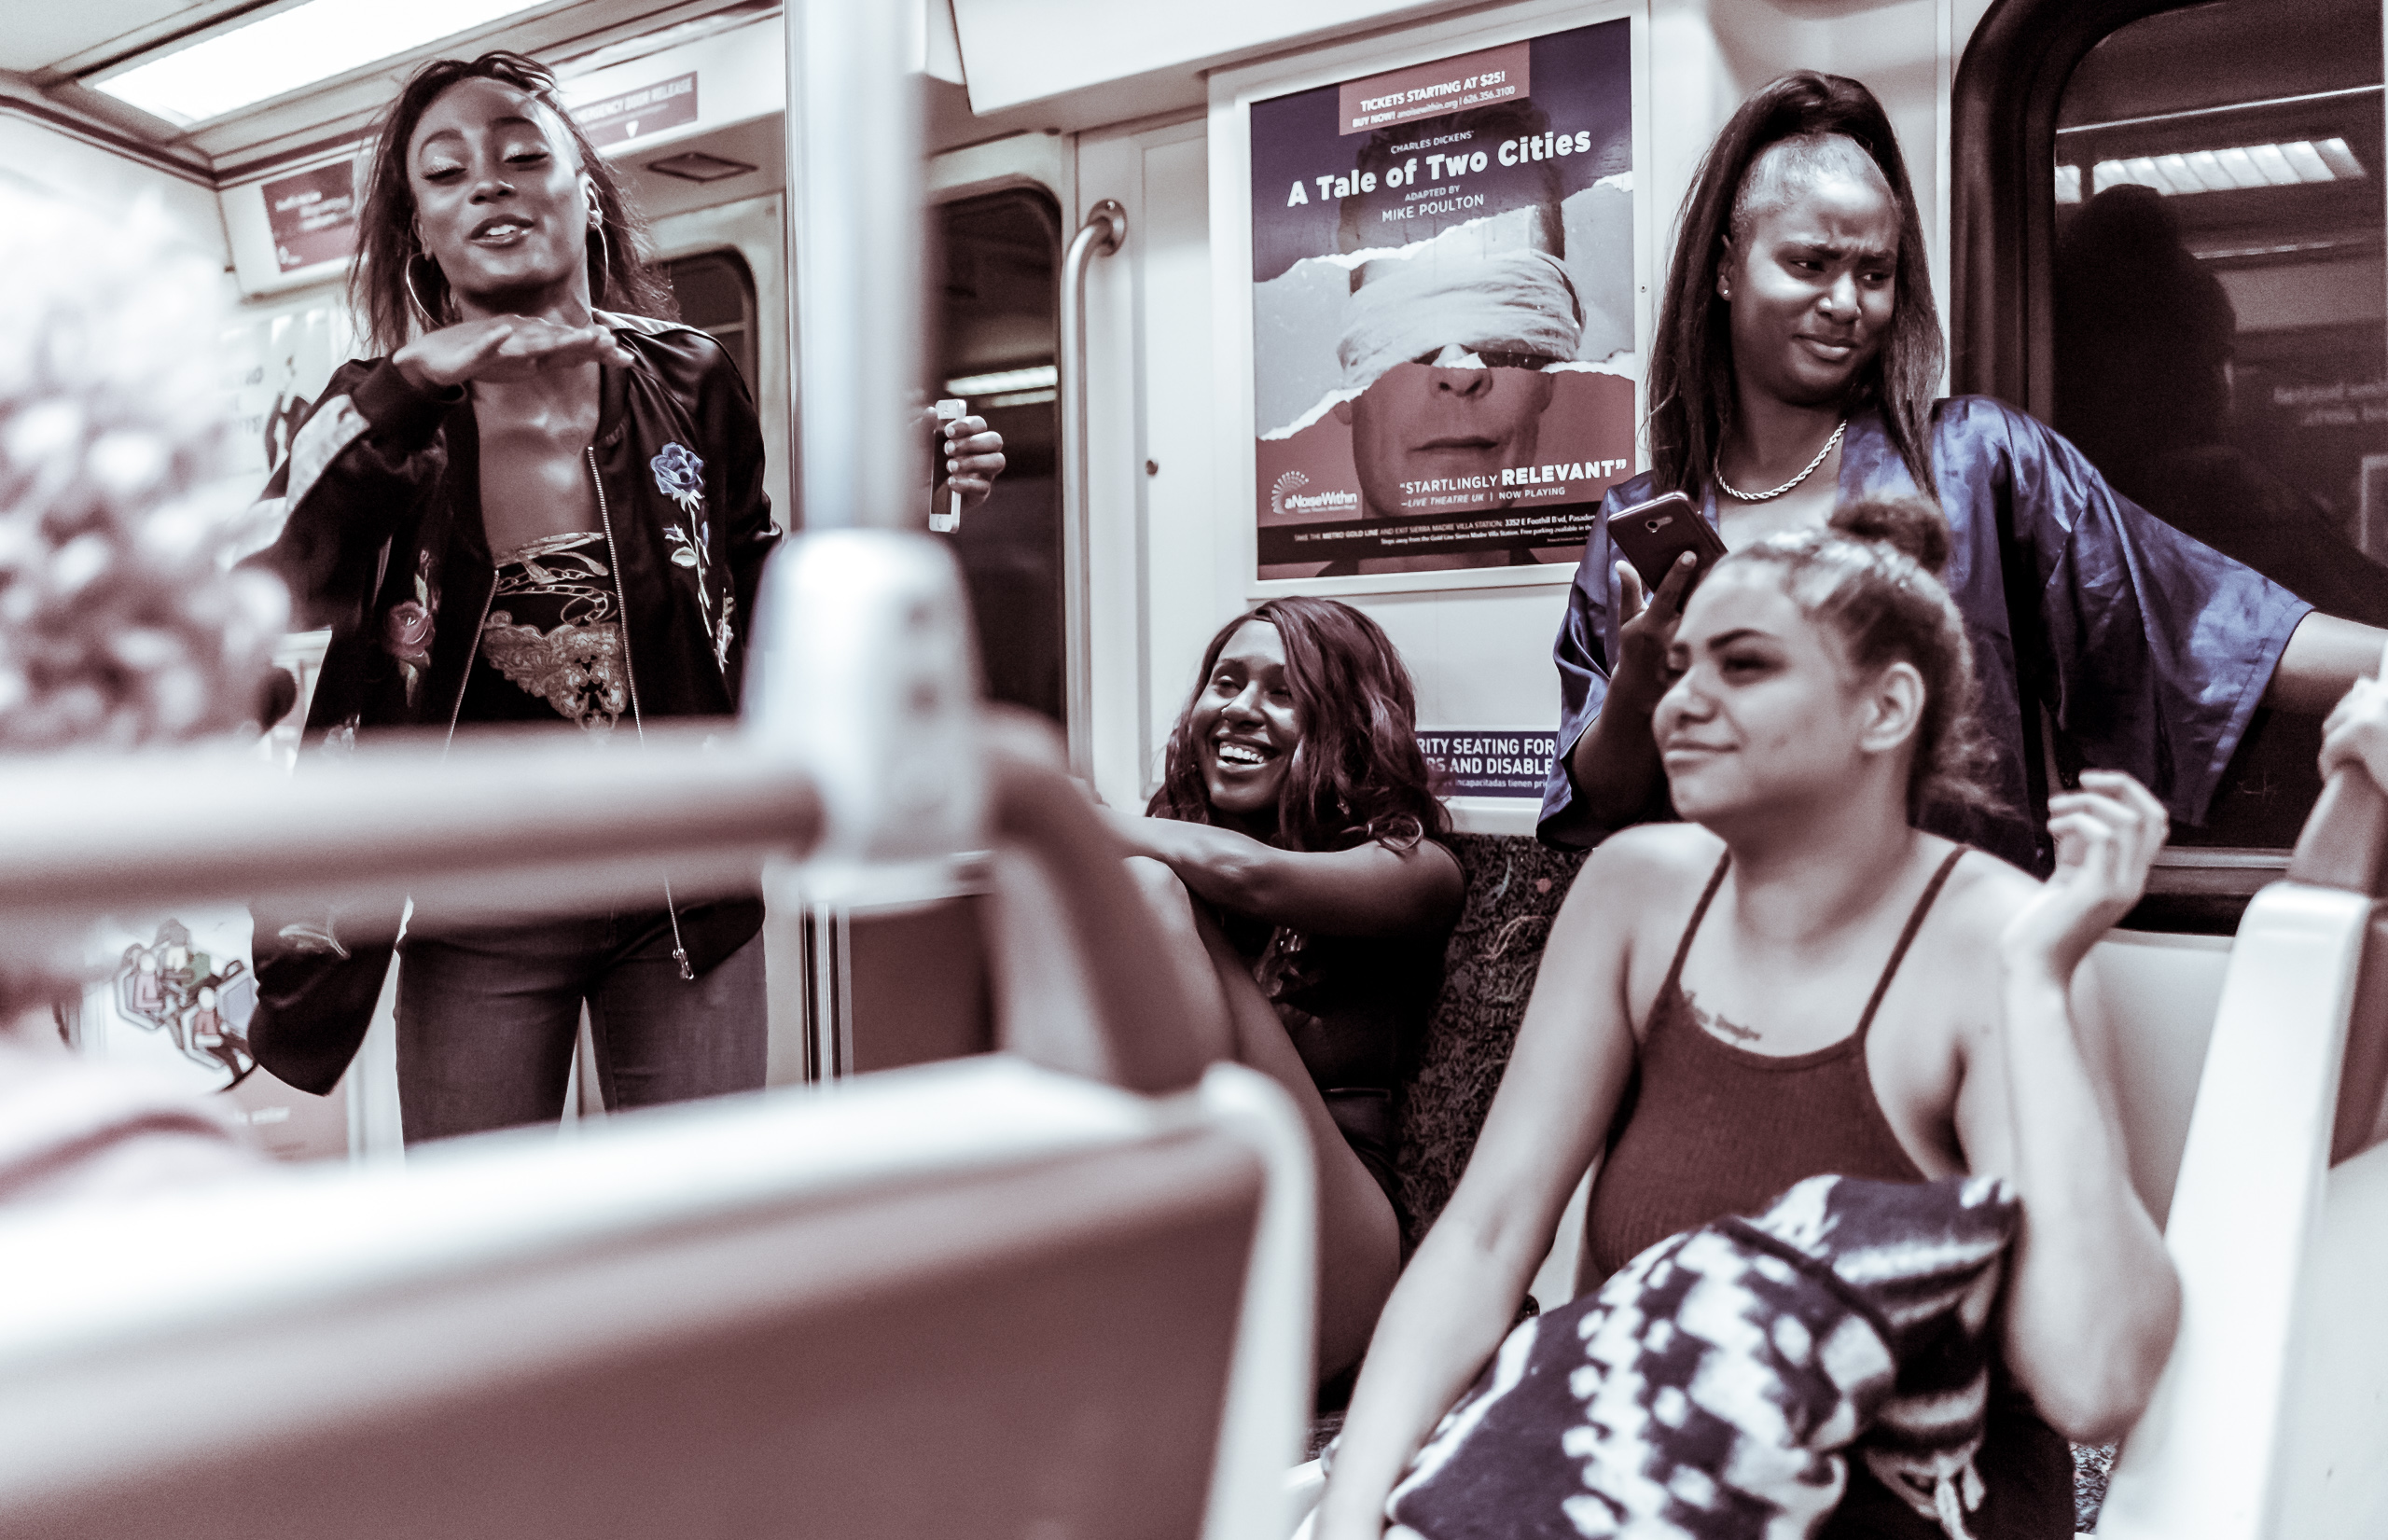 A group of 6 women singing together as the Red Line heads from Hollywood back toward Union Station.